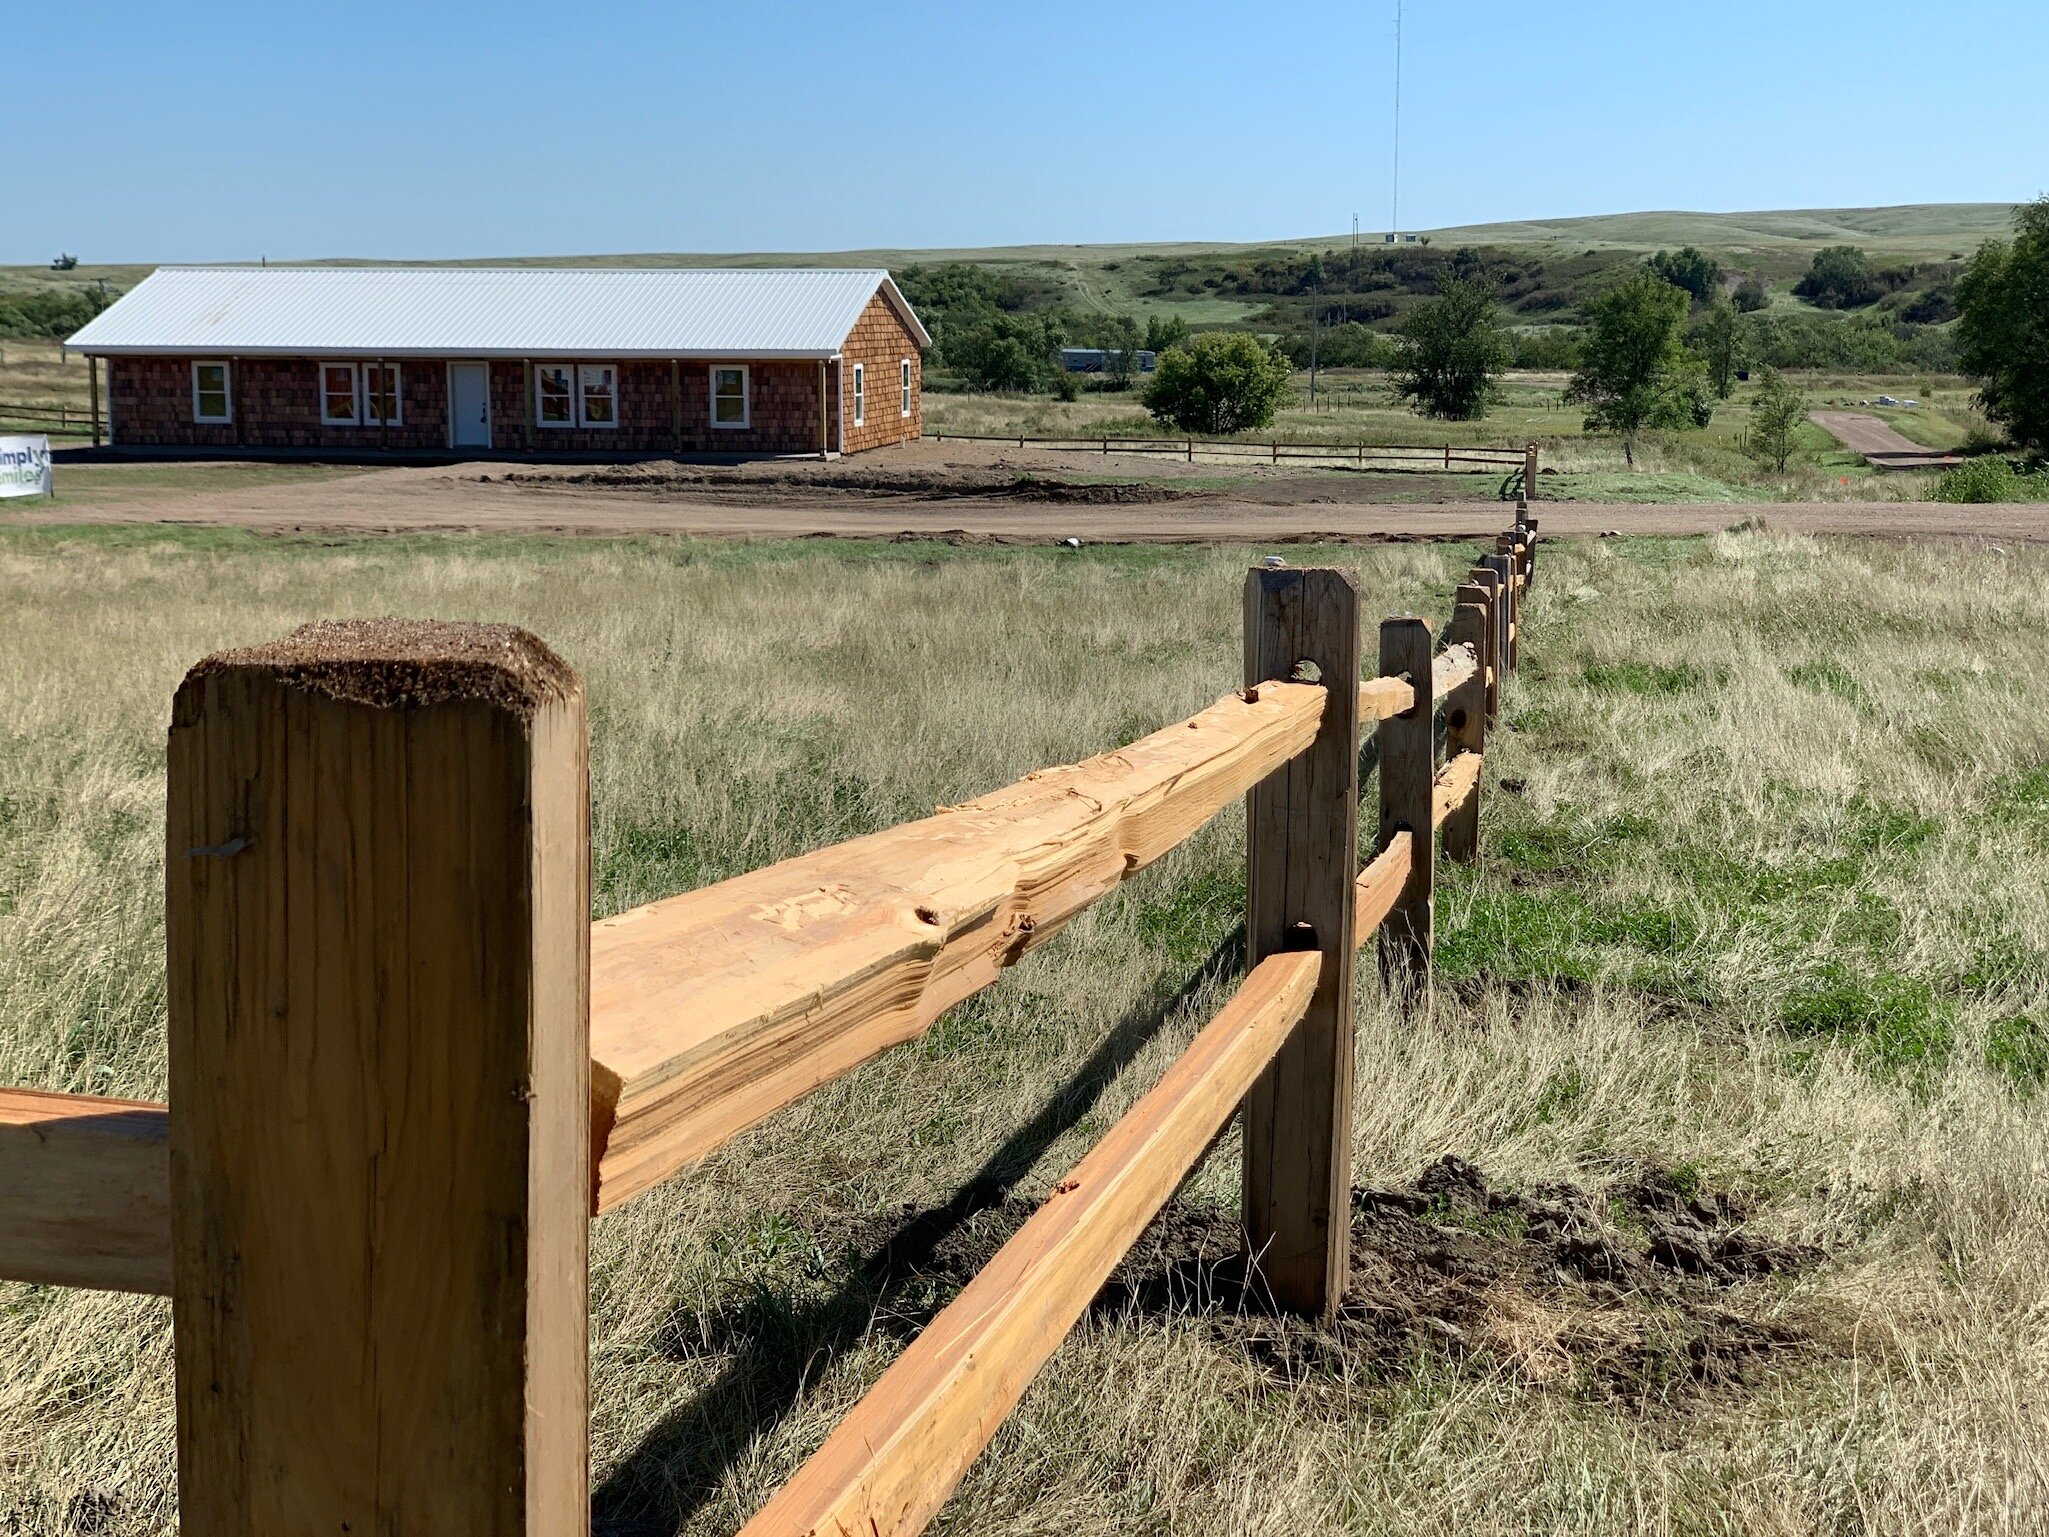 A view of the split rail fence and the approach road to the Simply Smiles Children's Village